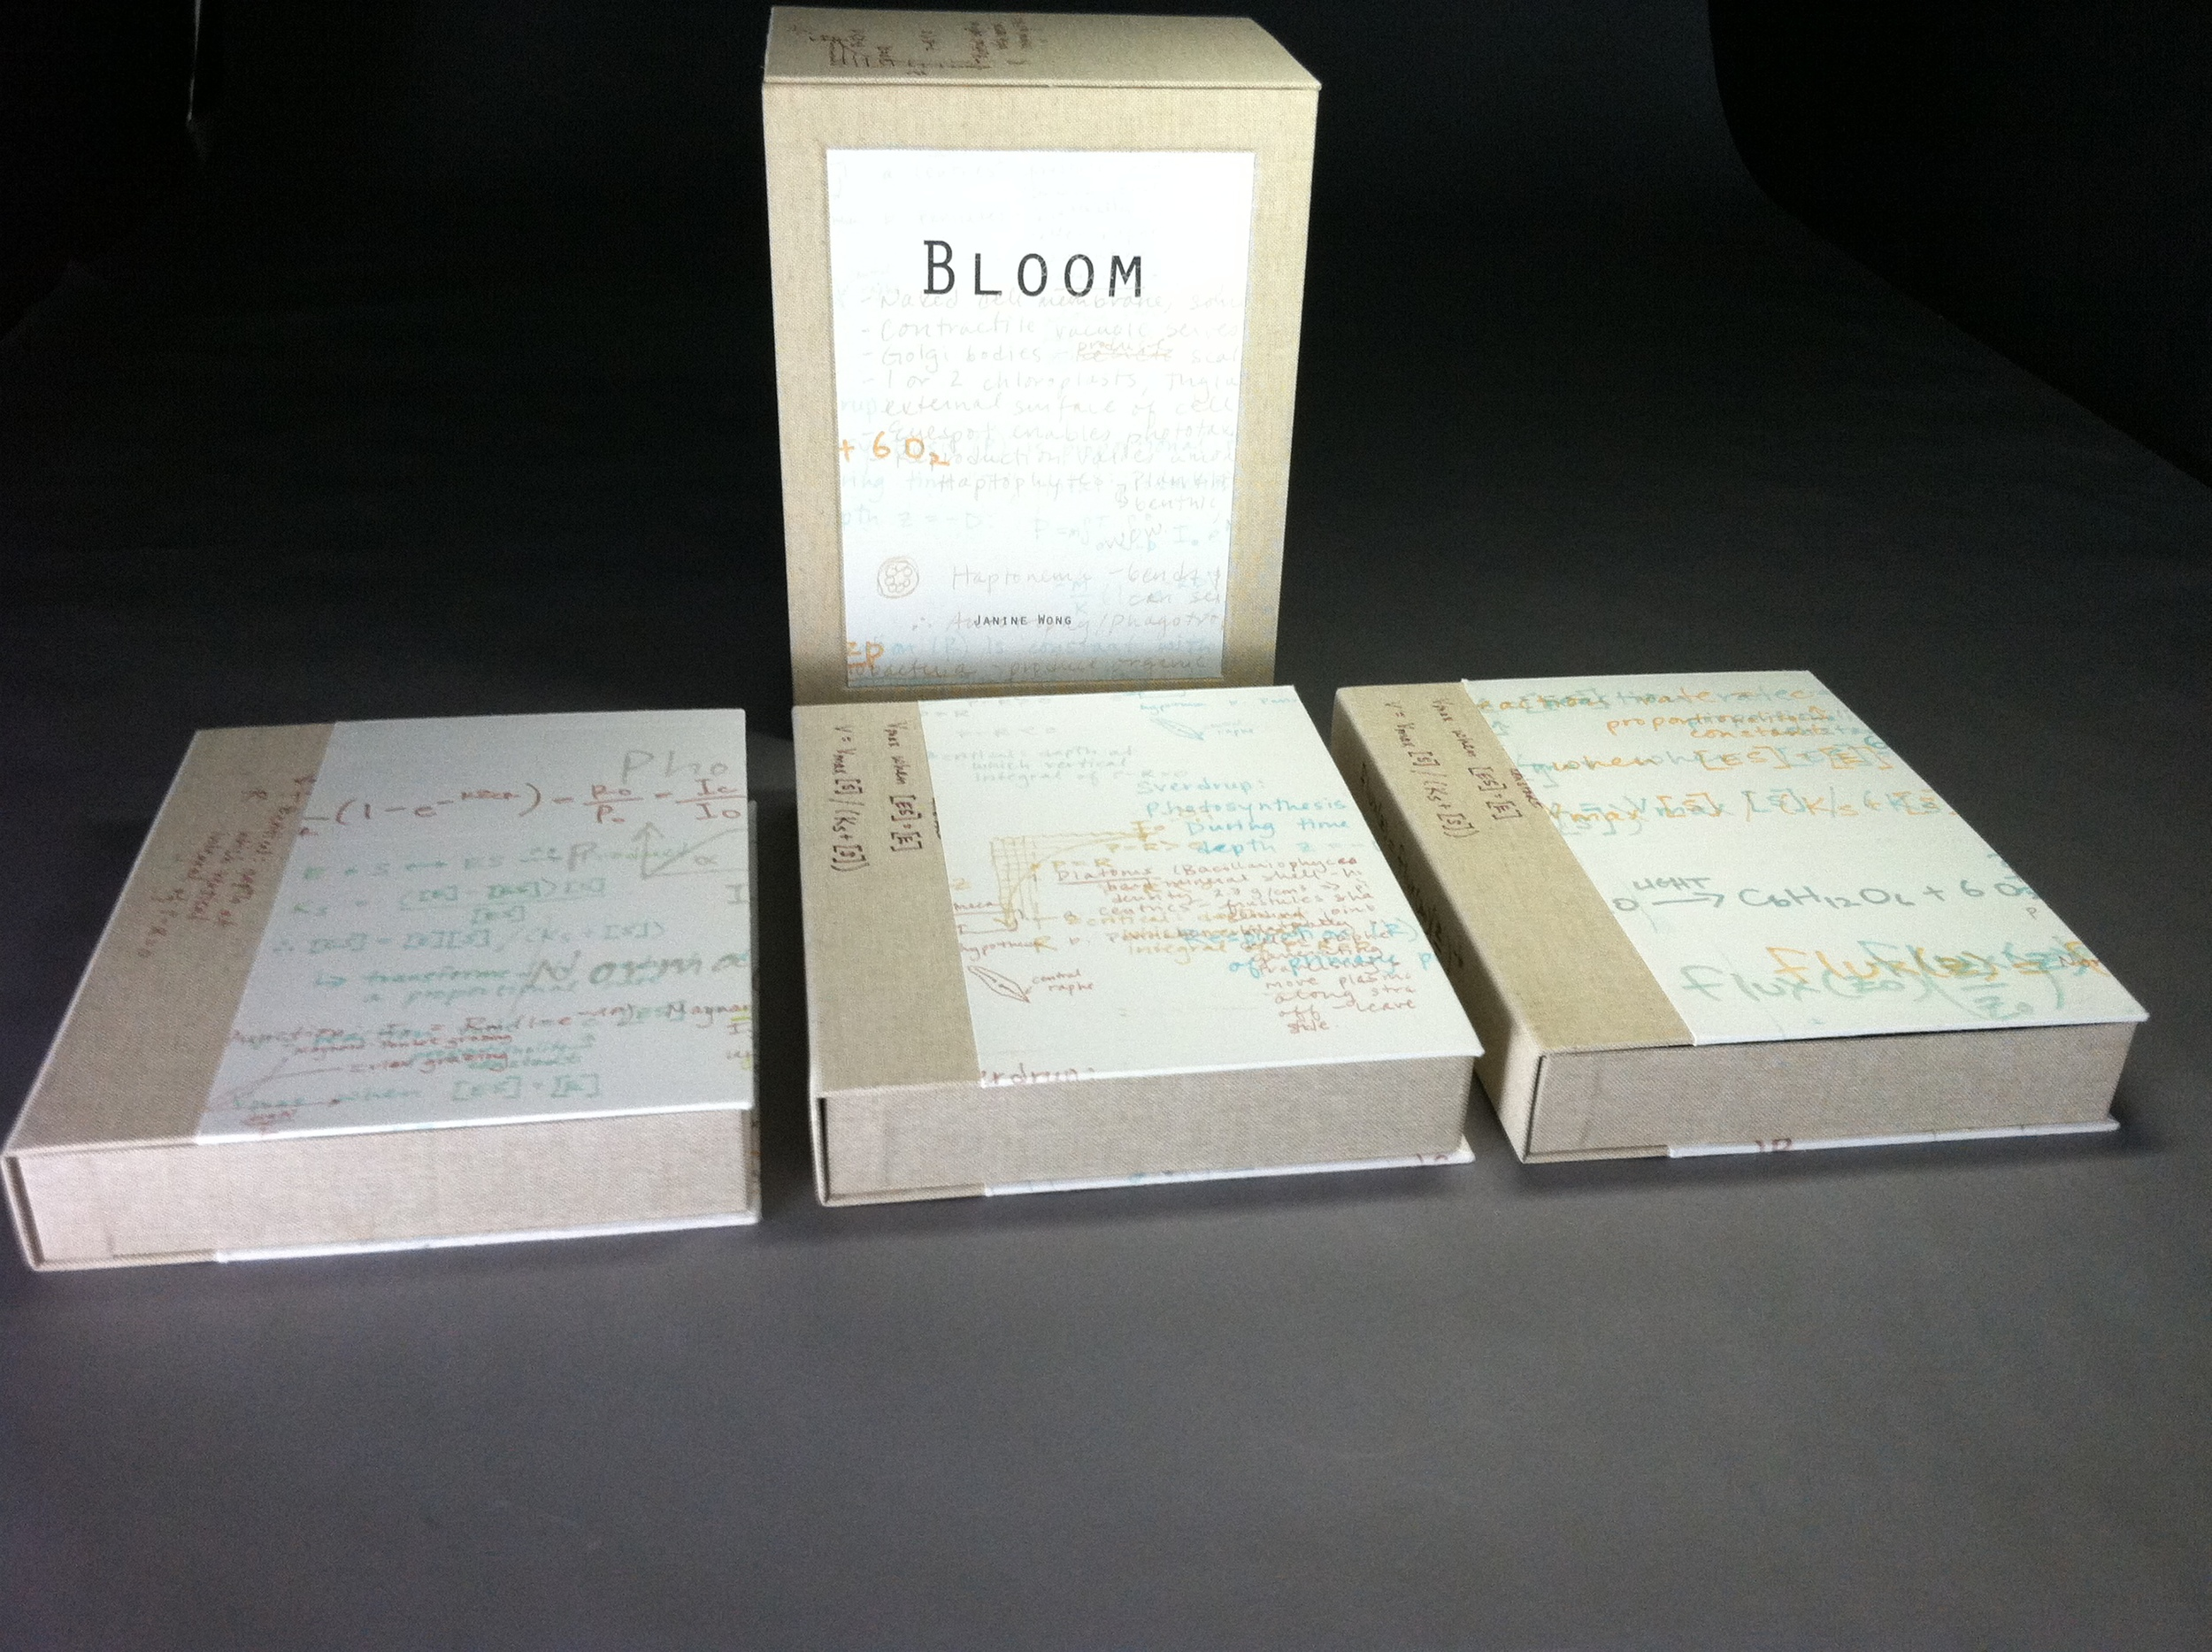 Bloom: Prelude, Bloom, Consequences